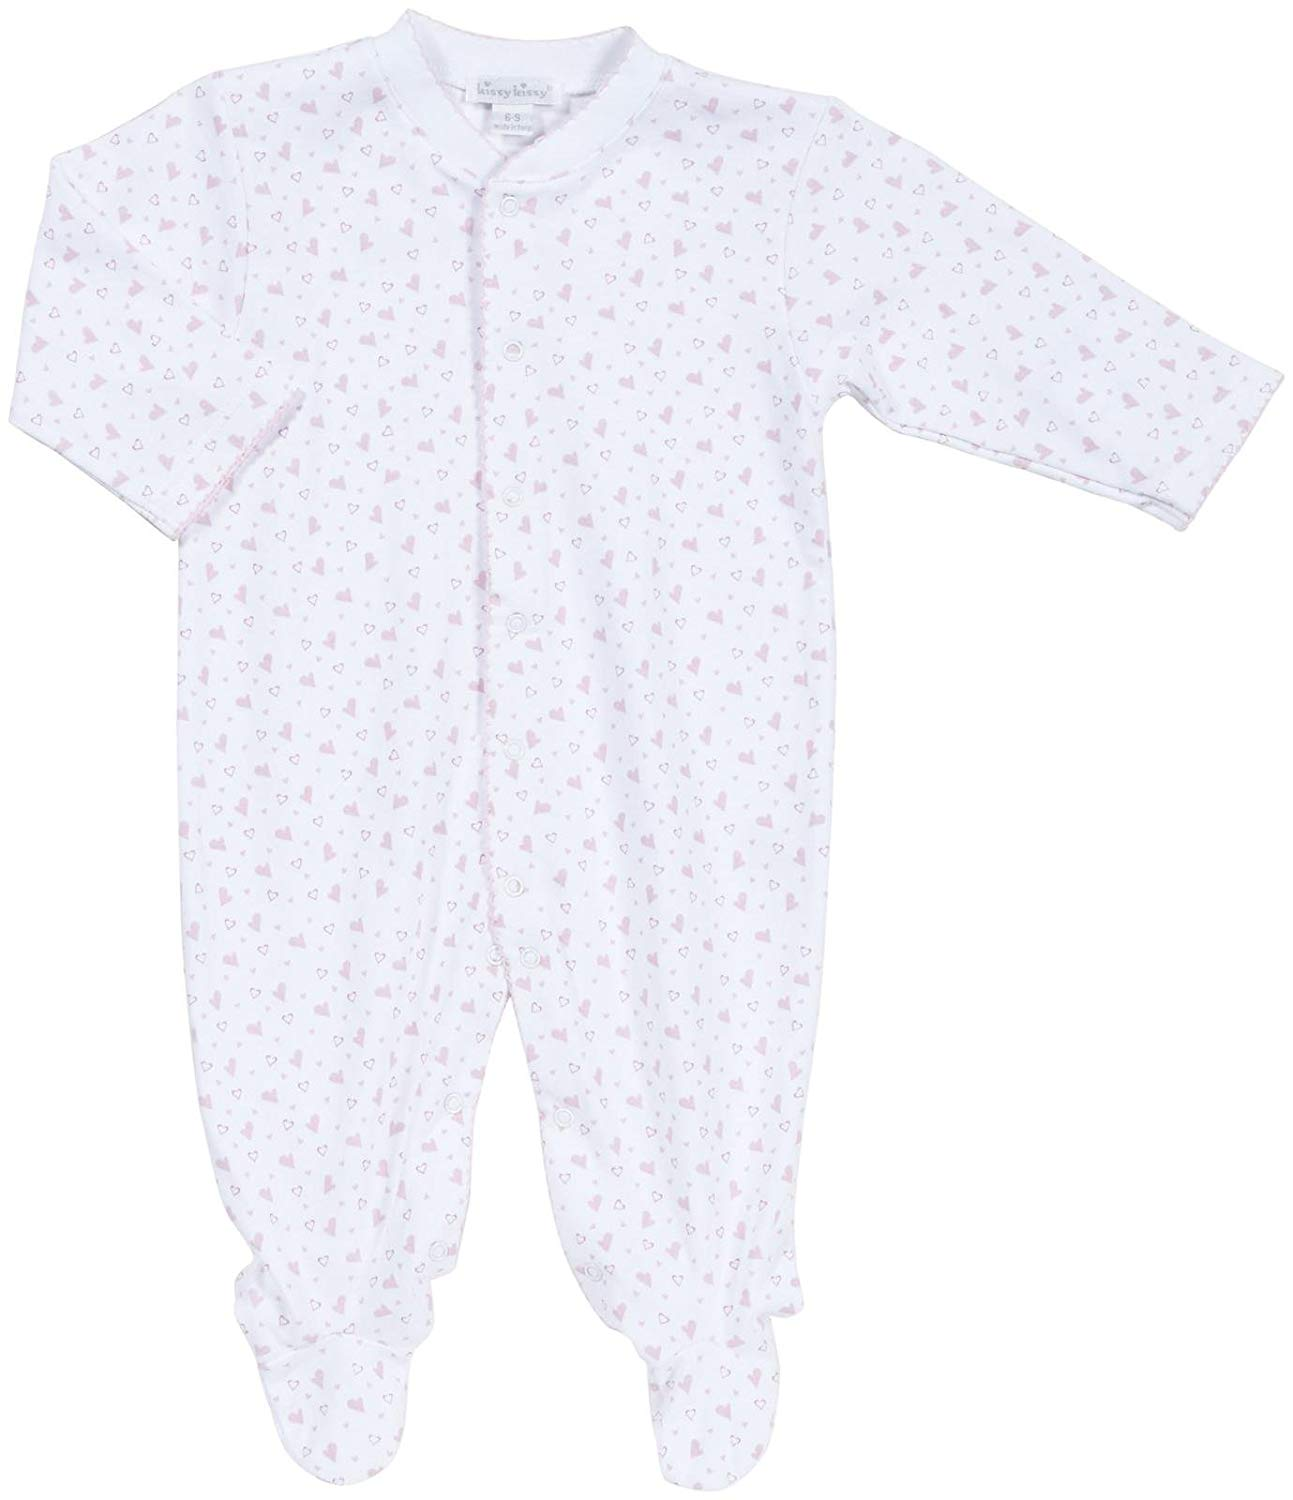 Cheap Kissy Kissy Baby Clothes Find Kissy Kissy Baby Clothes Deals